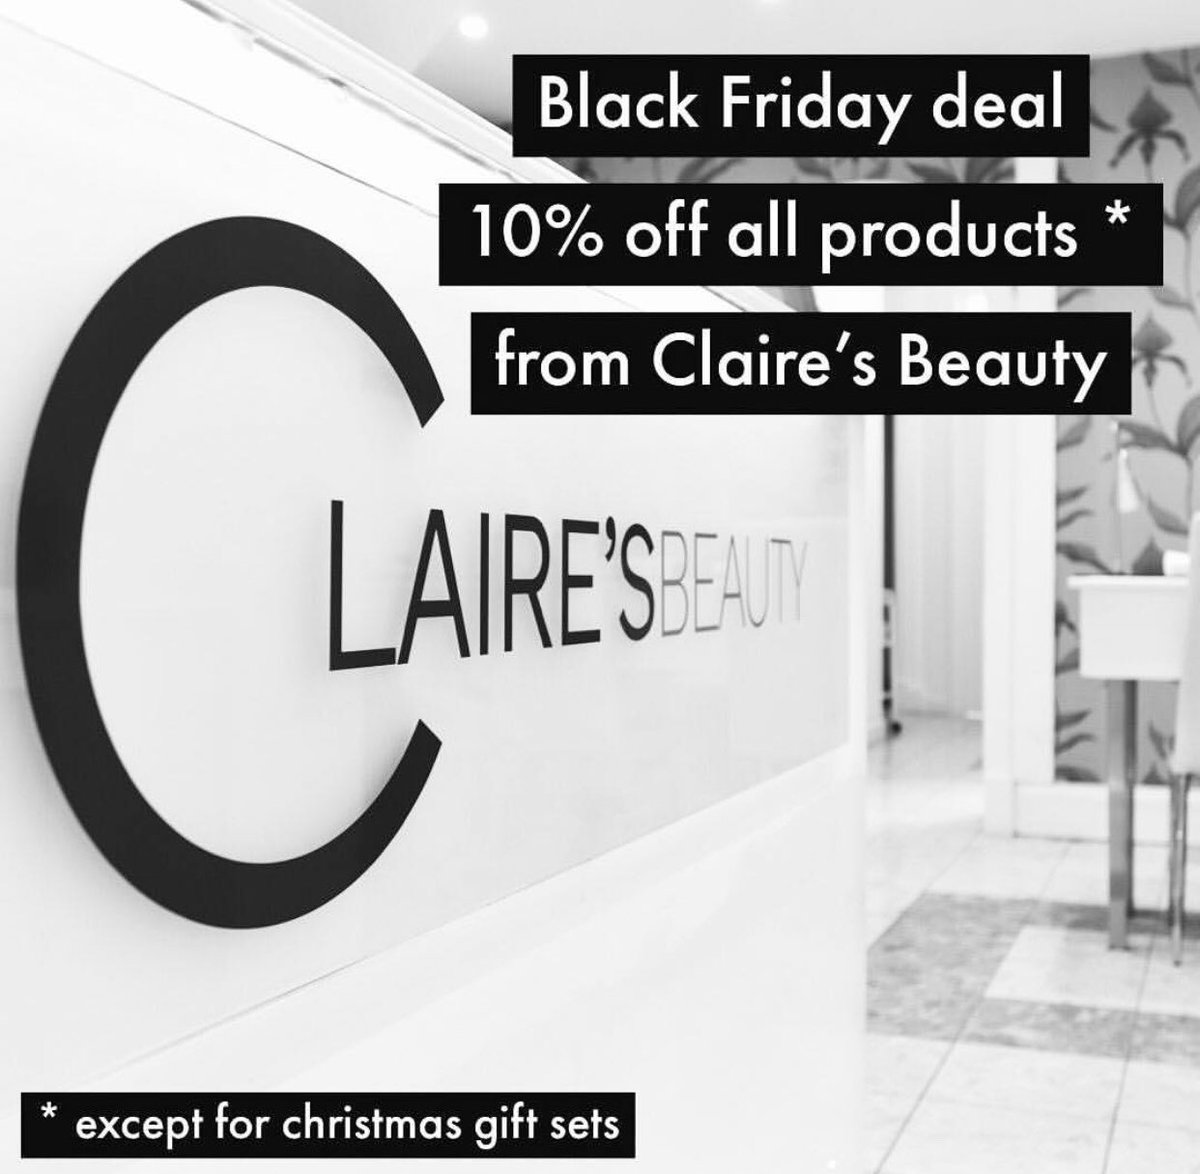 Black Friday deals in the West End at Claire's Beauty on Alva Street 💄   #hiddengems #takeacloserlook #thisisedinburgh #edinburgh